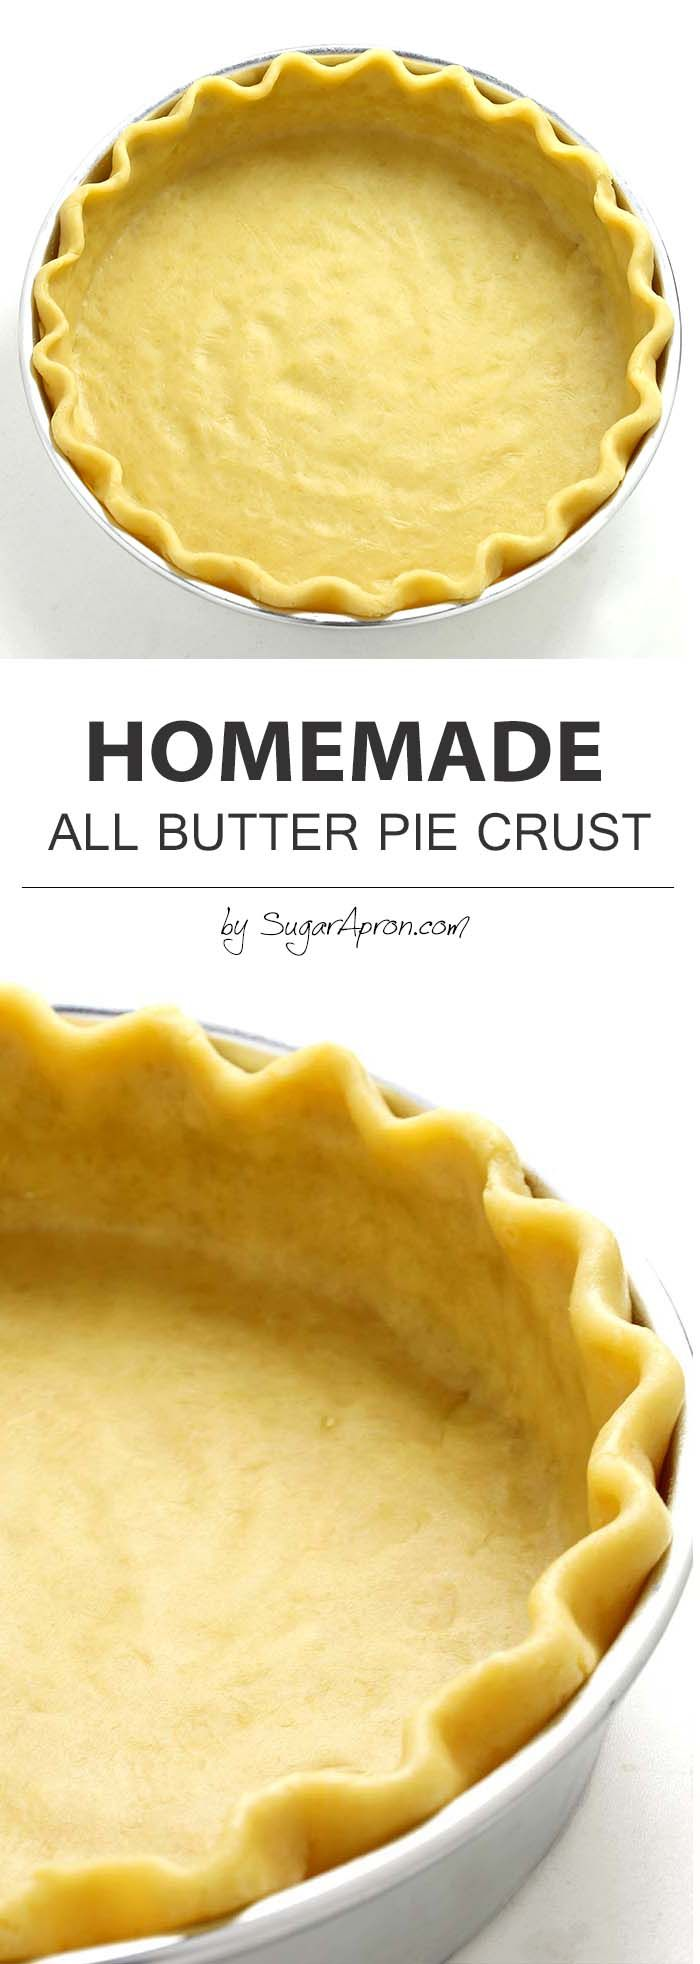 Similar to the one I make but slightly different ingredients. Worth a try.